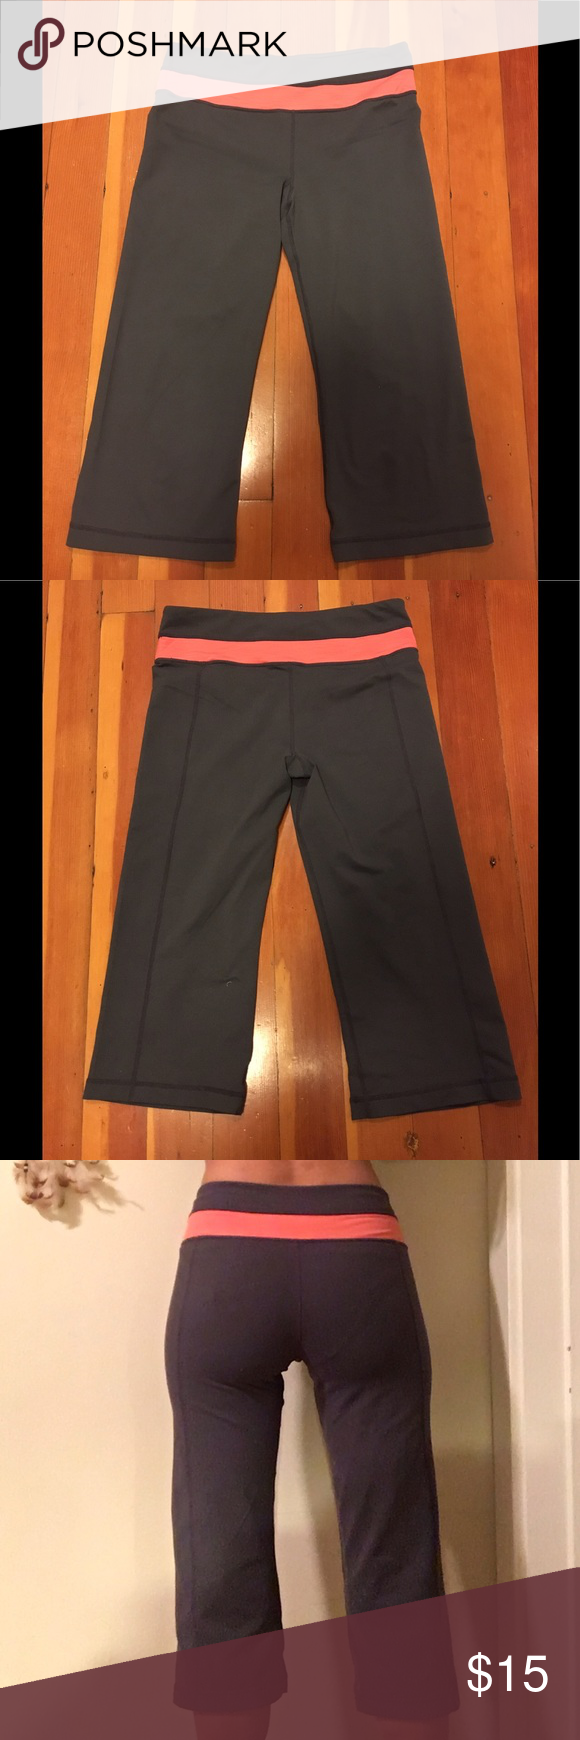 93c7b059cf33 Gray and pink NWOT workout leggings I believe these are Champion brand  purchased at Target. No tag so not 100% certain. Pink trim on gray. NWOT.  Well made.